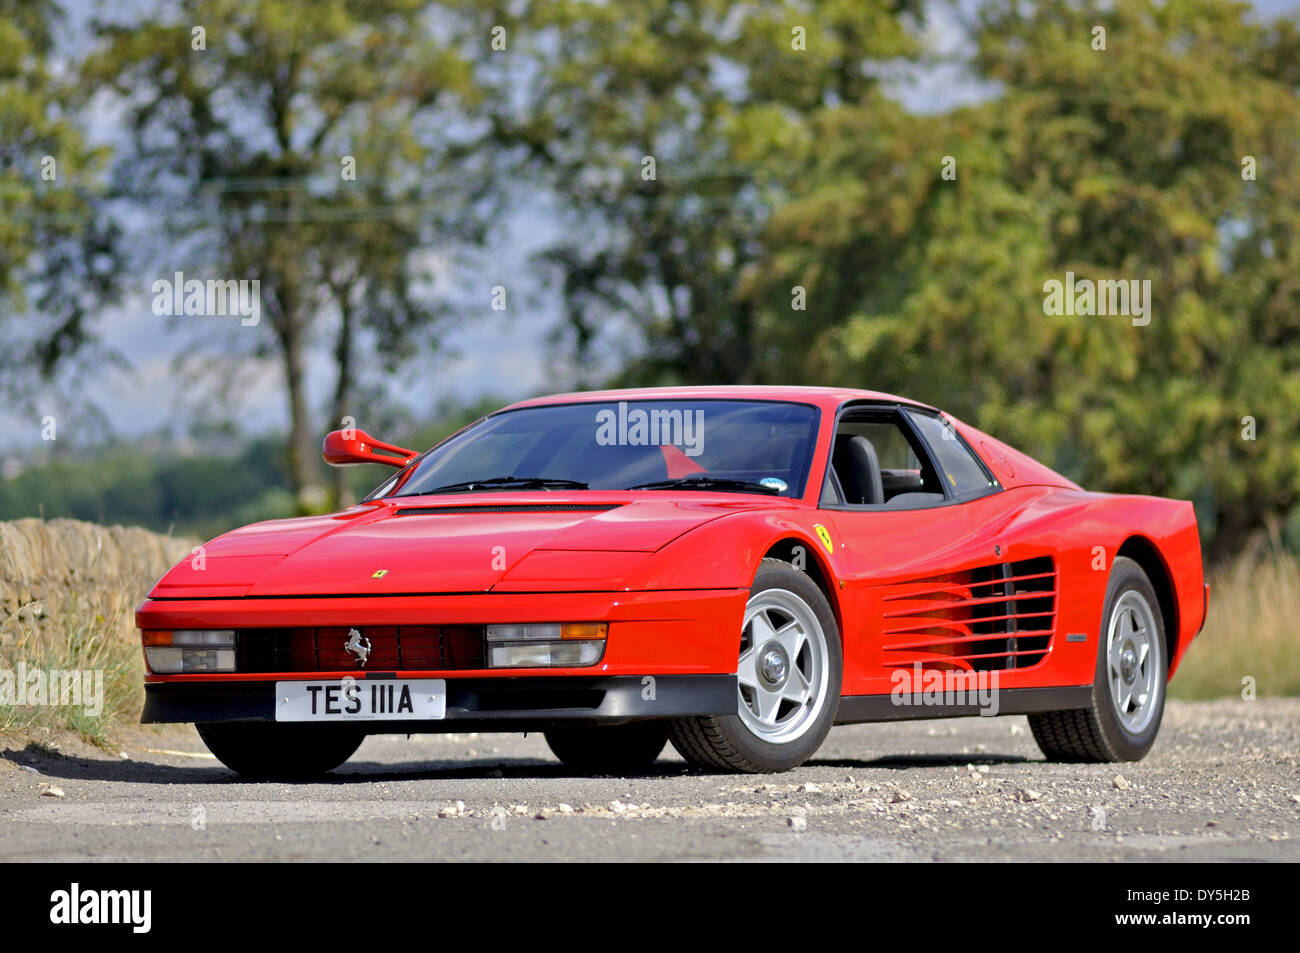 Ferrari Testarossa standing on a country lane in the Summer with trees in the background - Stock Image